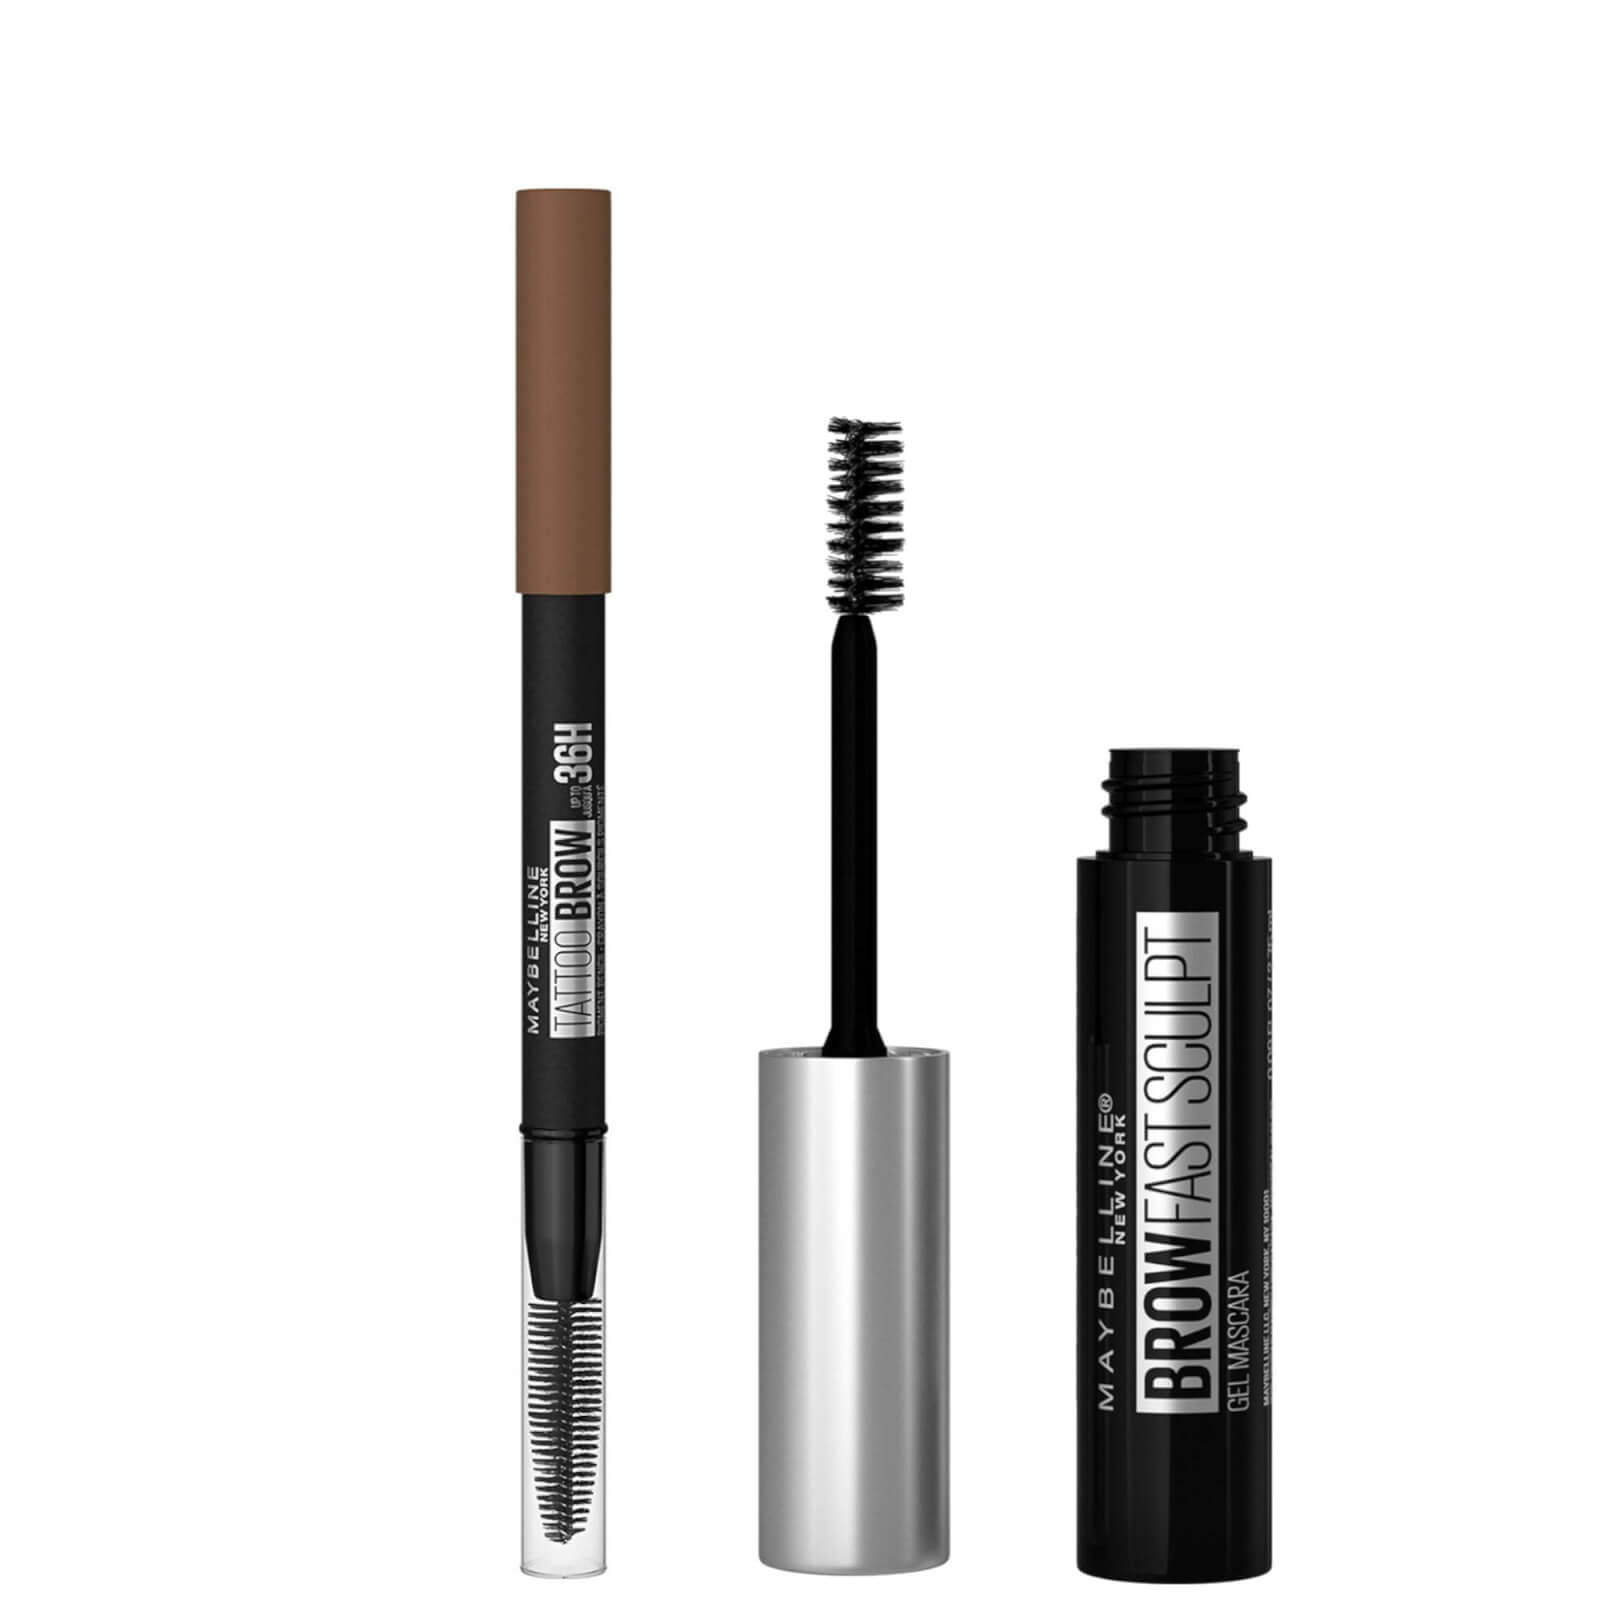 Maybelline Fill and Set Brow Bundle (Various Shades) - Soft Brown 03